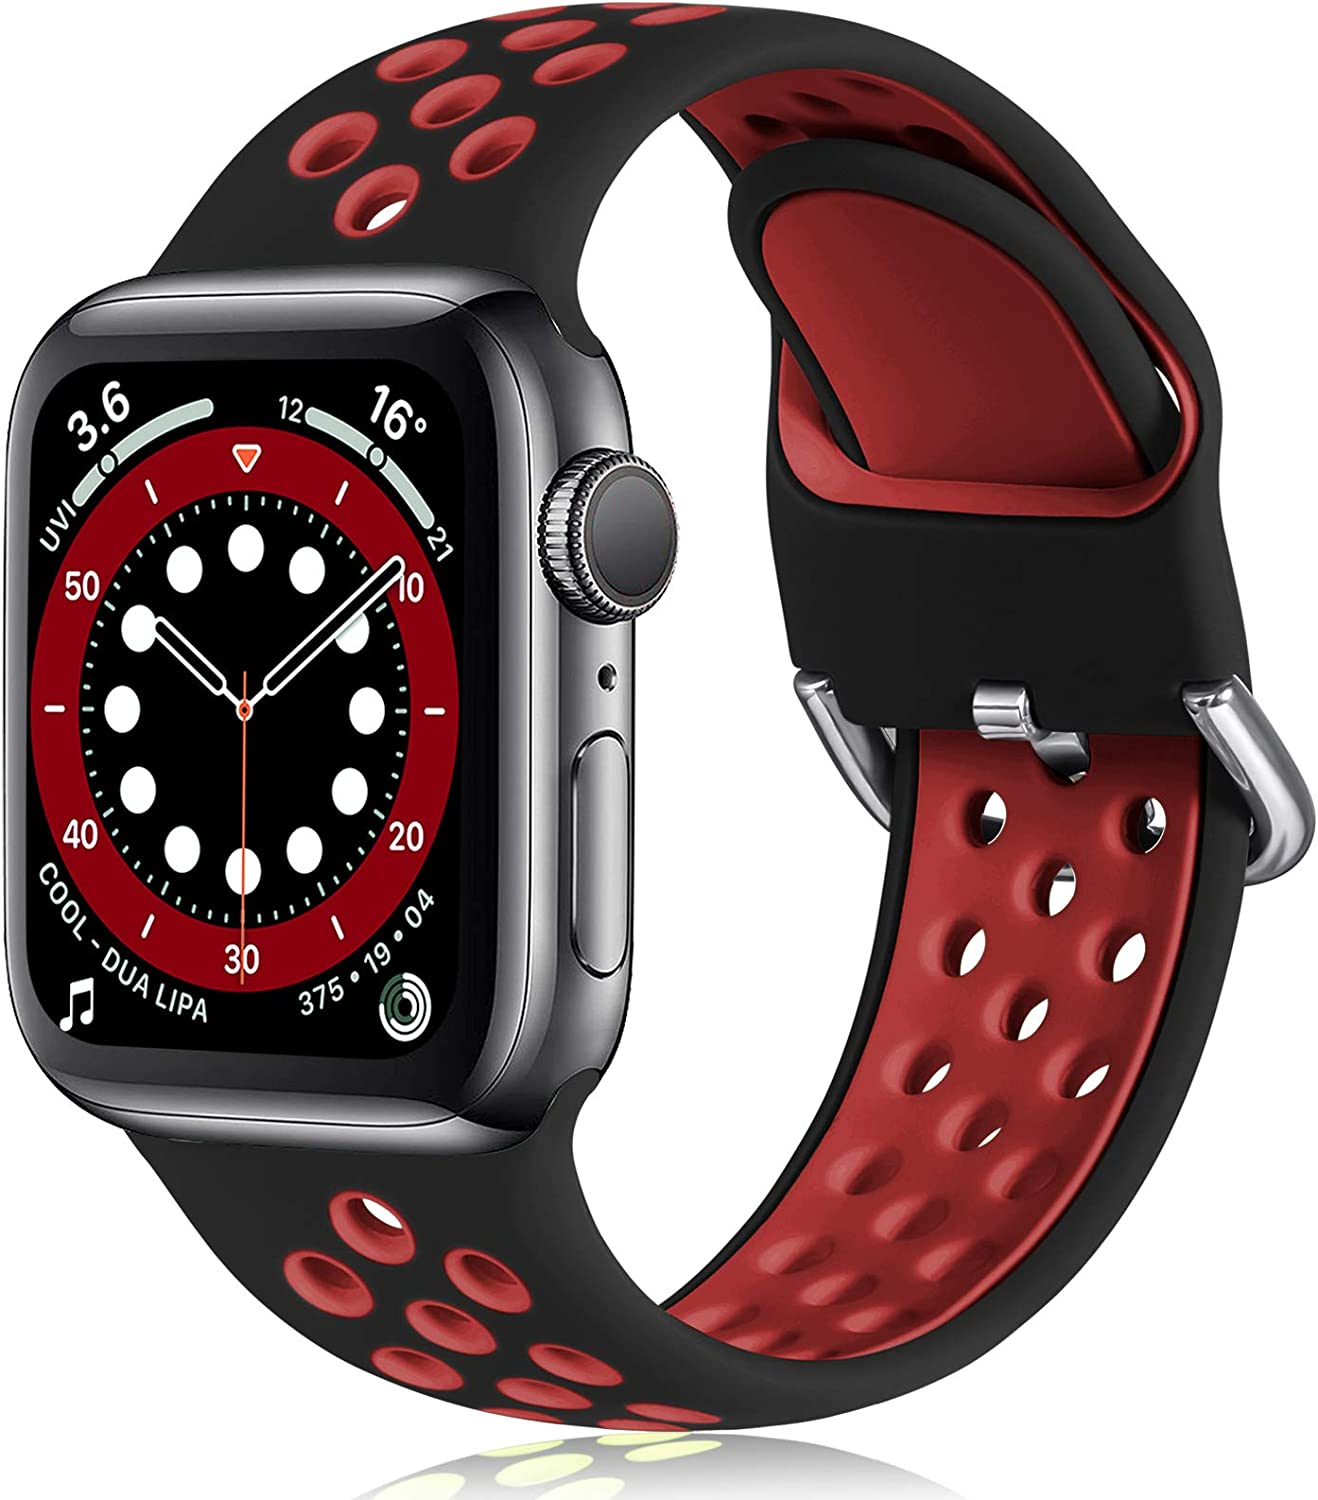 Witzon Compatible with Apple Watch Band 42mm 44mm Soft Silicone Waterproof Breathable Replacement Wristband Sport Bands for iWatch Series 1/2/3/4/5/6/SE Women Men, Black Red, M/L